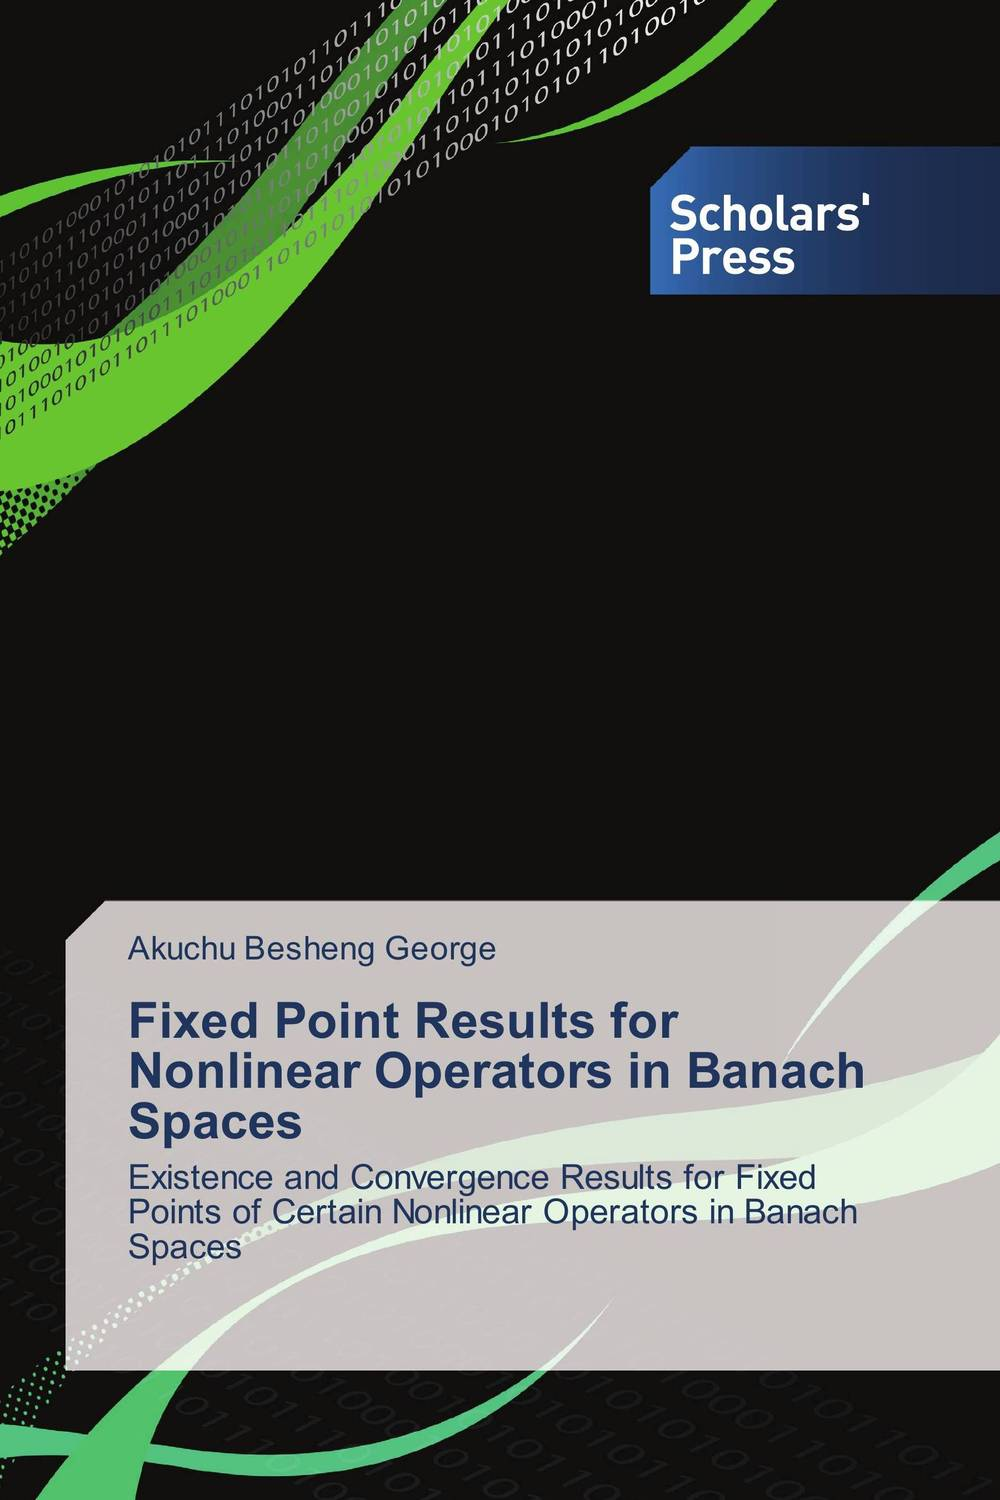 Fixed Point Results for Nonlinear Operators in Banach Spaces module amenability of banach algebras